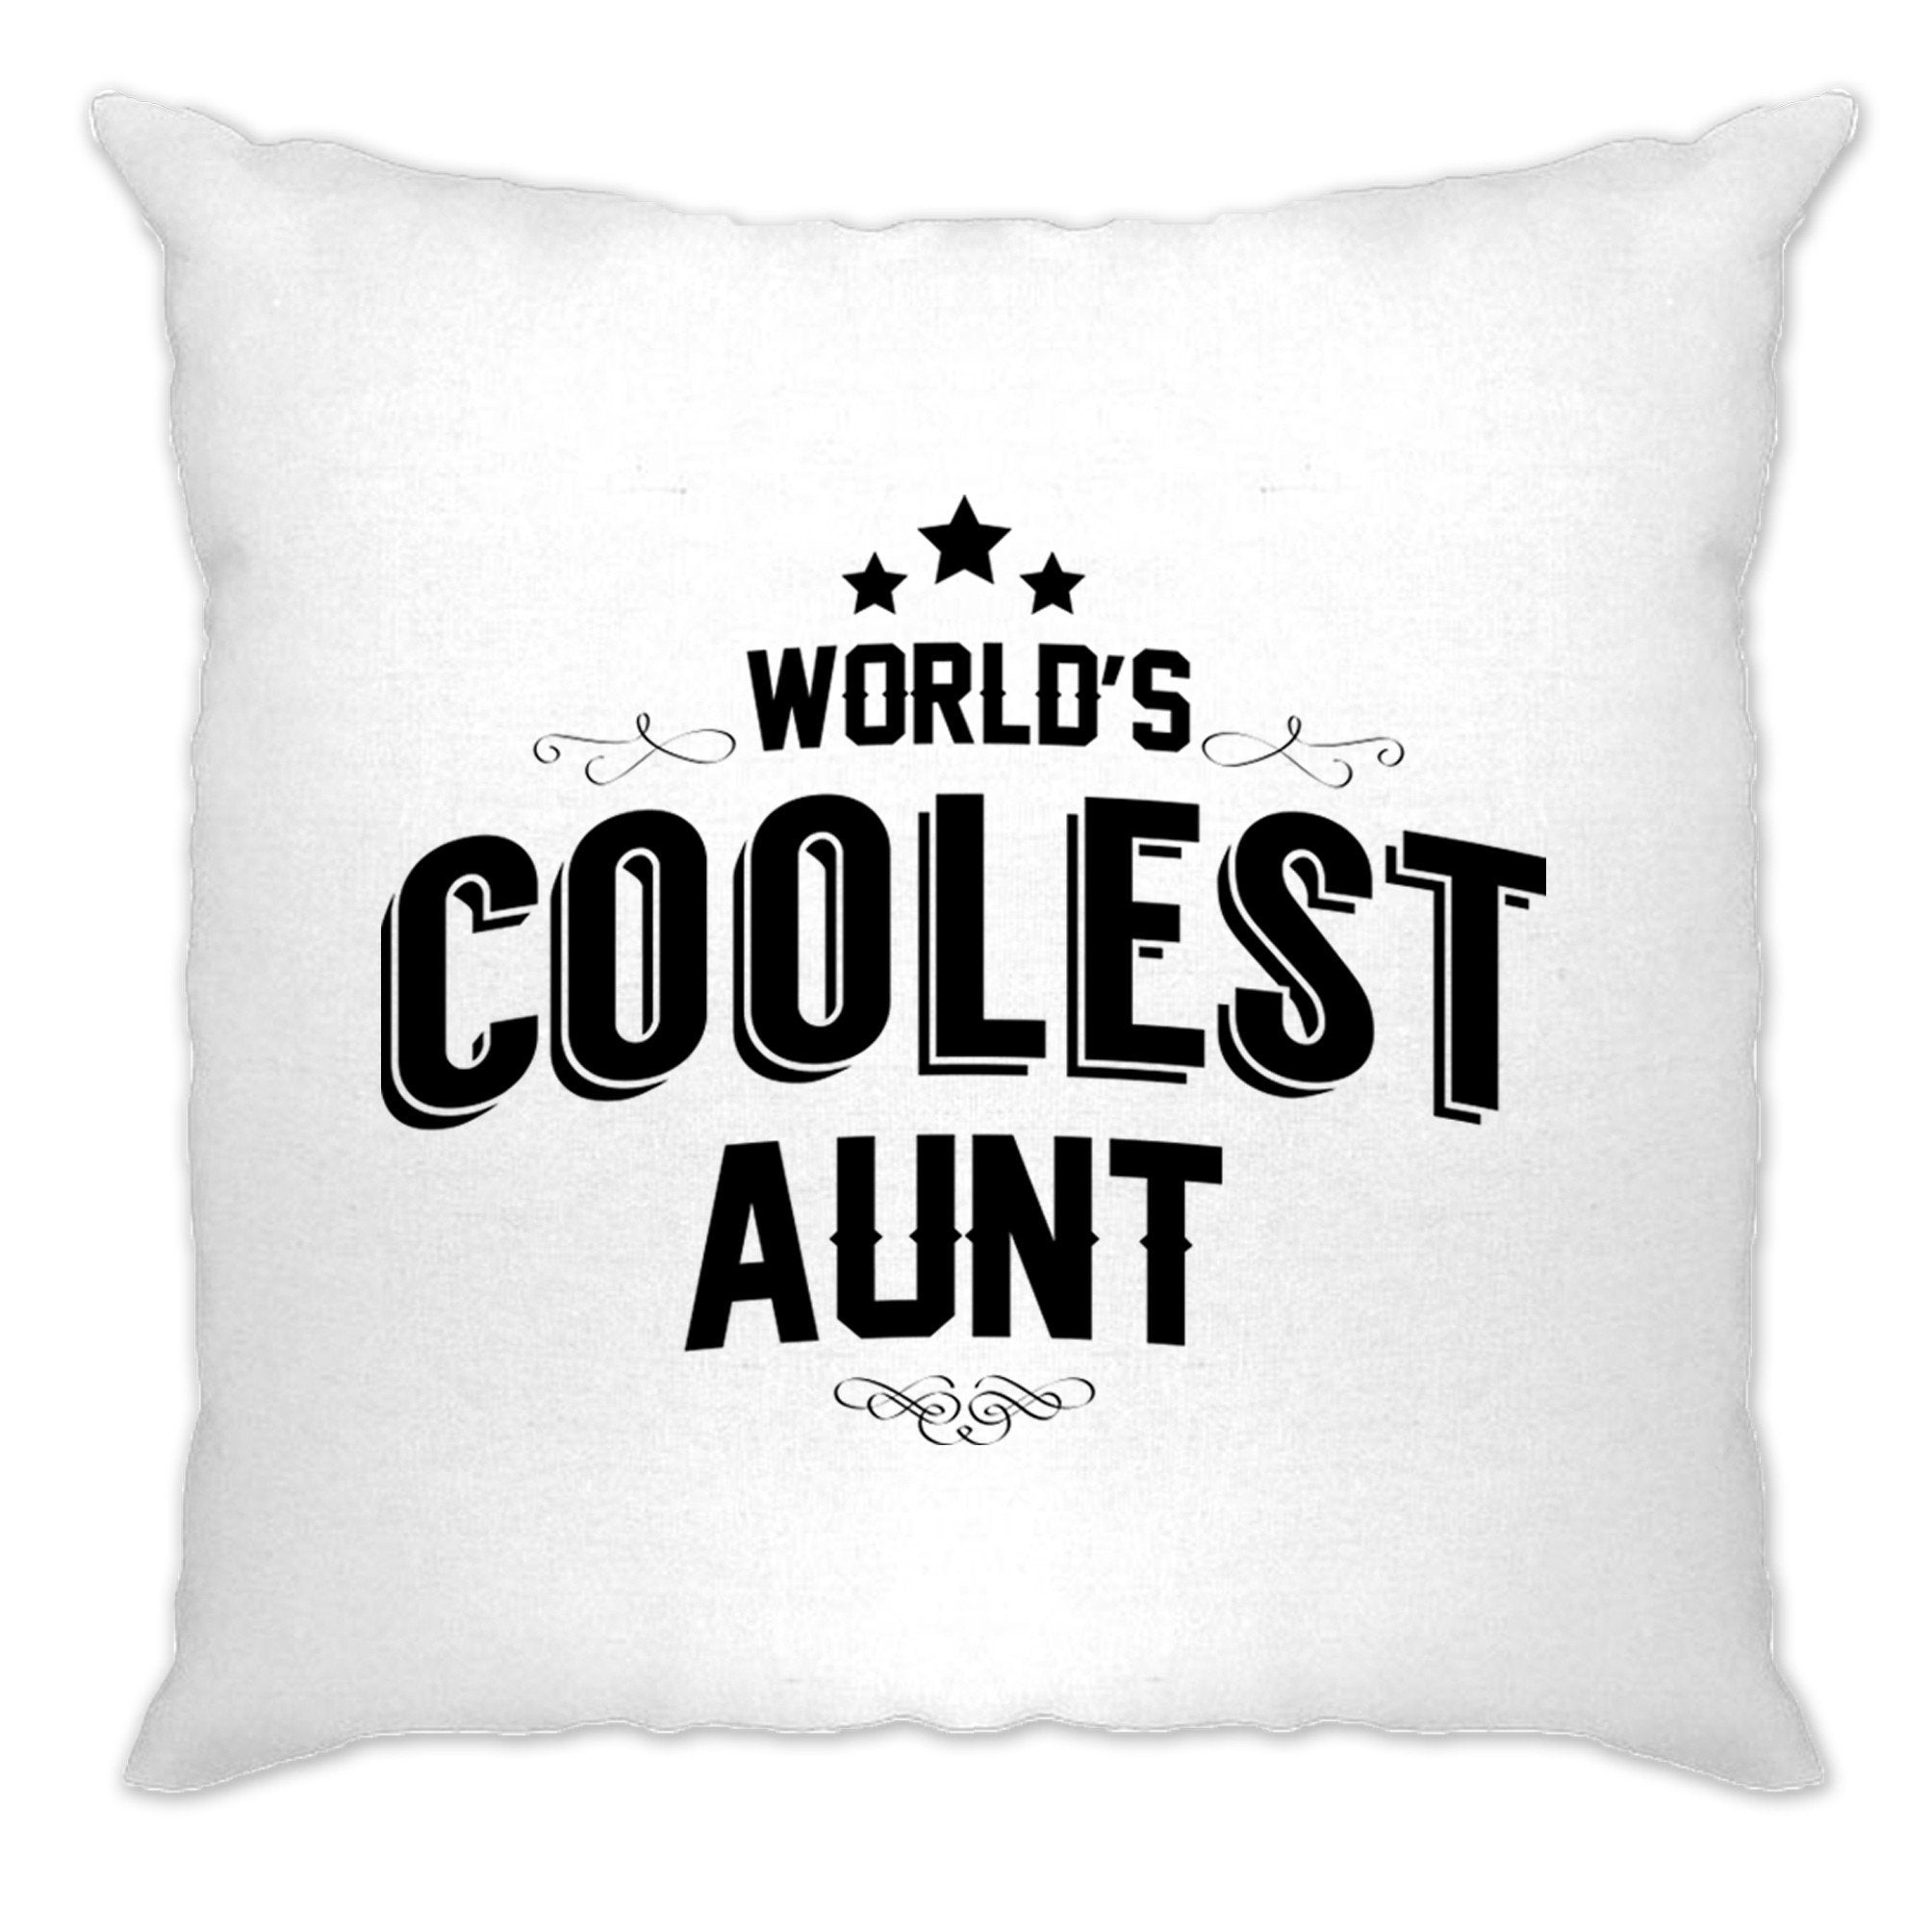 Novelty Cushion Cover Worlds Coolest Aunt Slogan